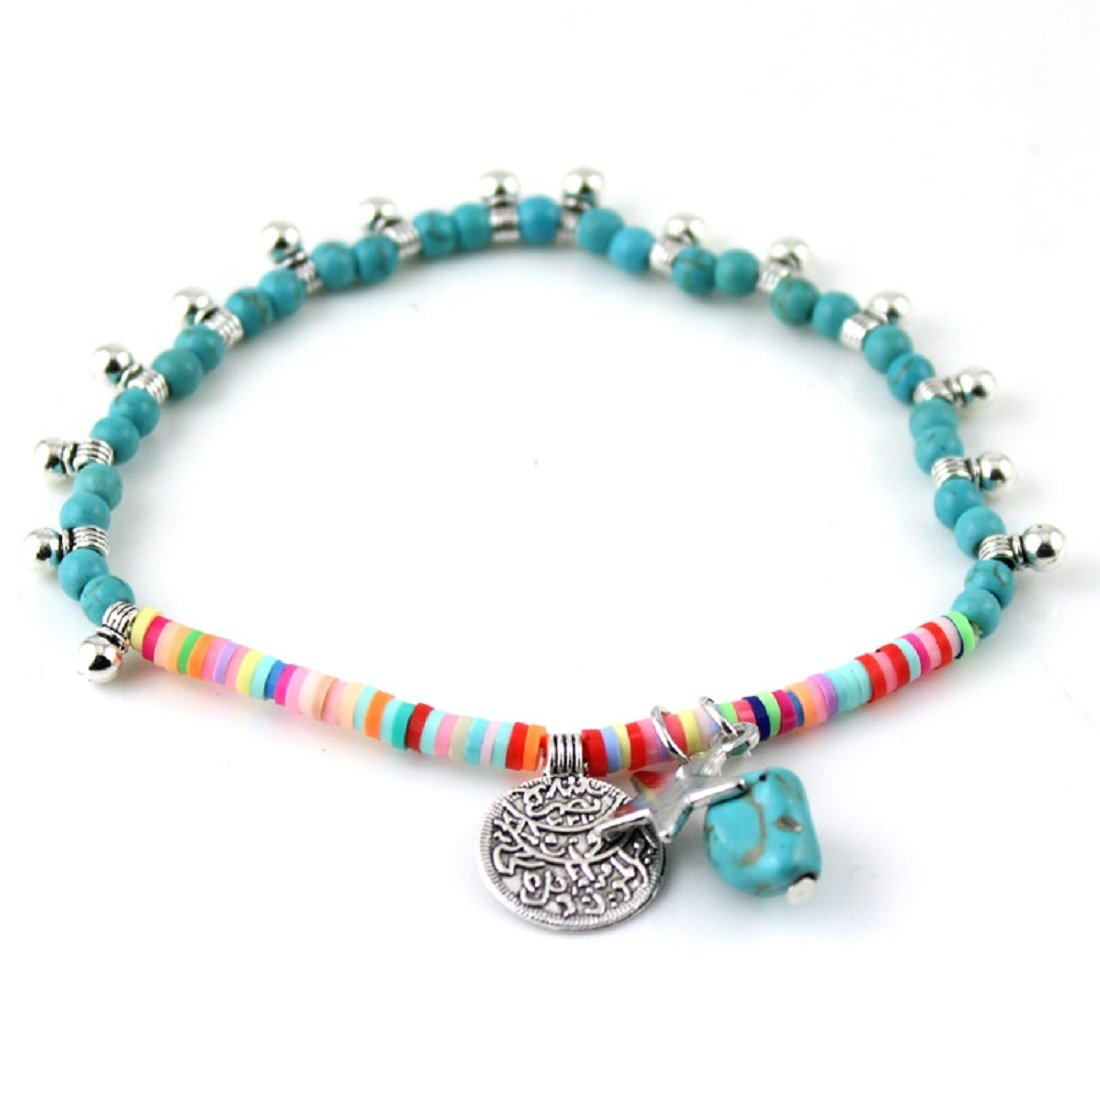 JAASA 2 Piece Sale Jewelry Foot Jewelry Tourism Summer Beach Barefoot Sandals Bracelet Ankle on The Leg Tibet Silver Coin